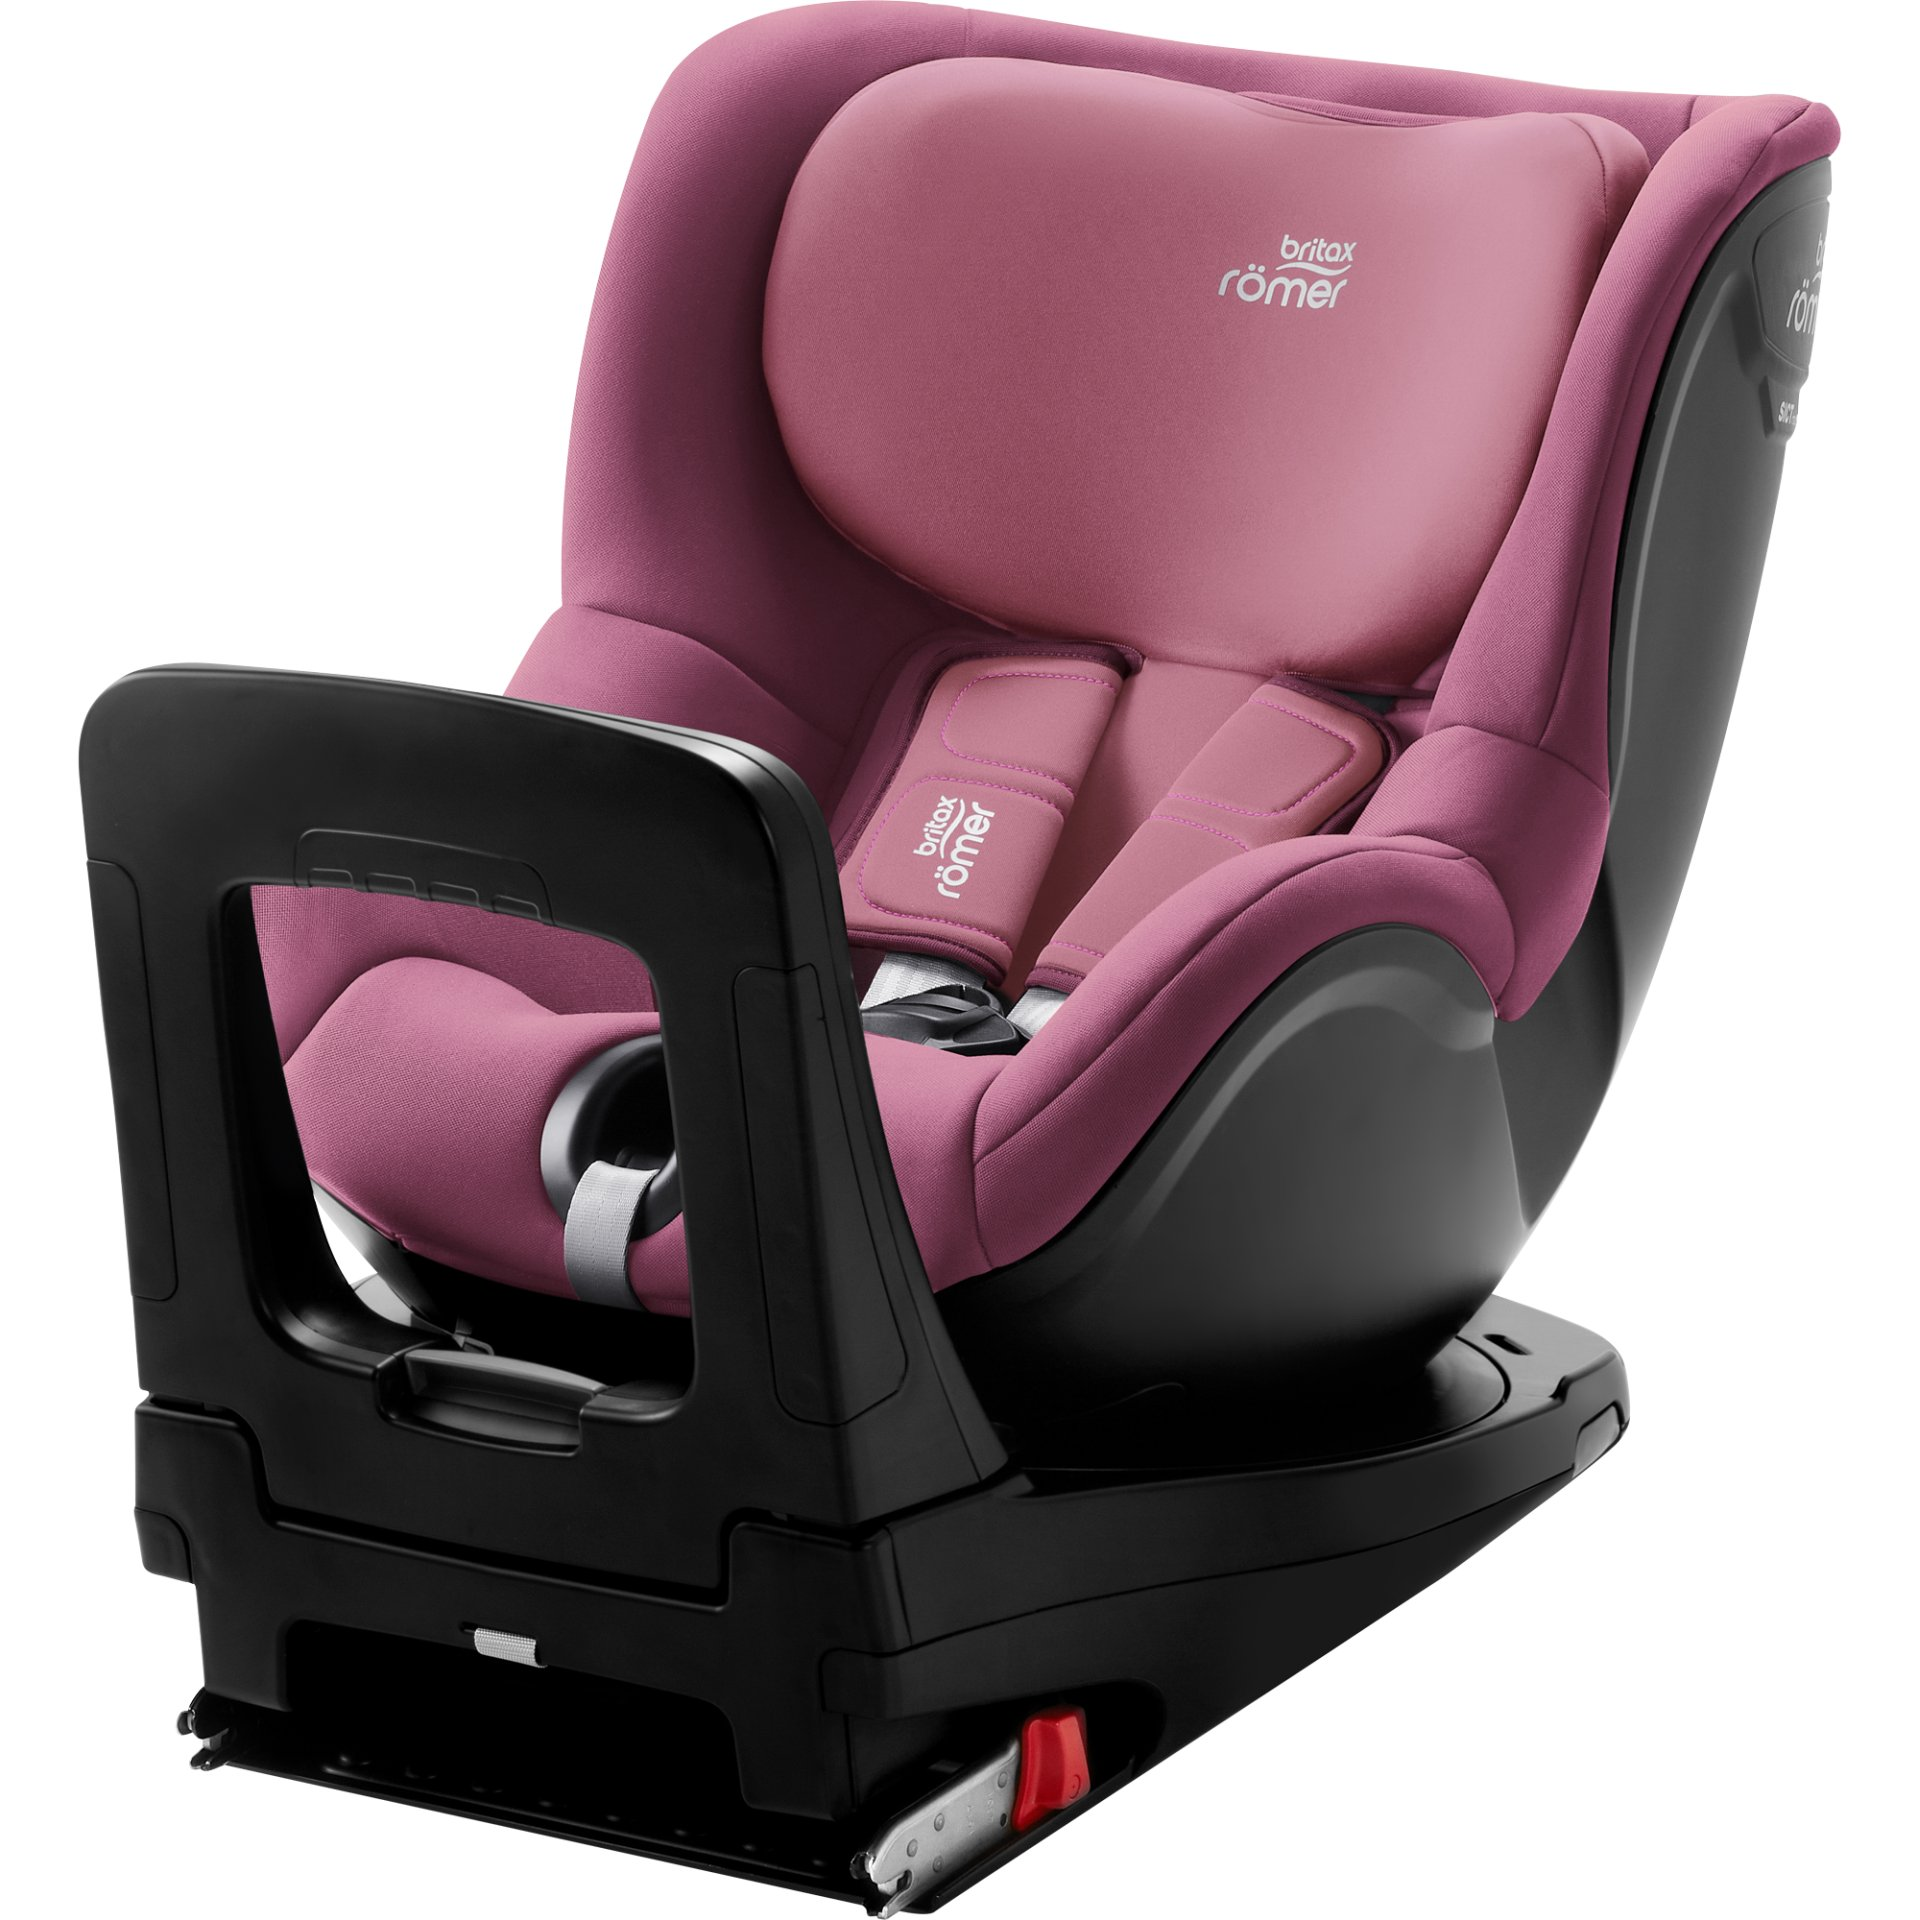 Römer I Size : britax r mer child car seat dualfix m i size 2018 wine rose buy at kidsroom car seats ~ Orissabook.com Haus und Dekorationen